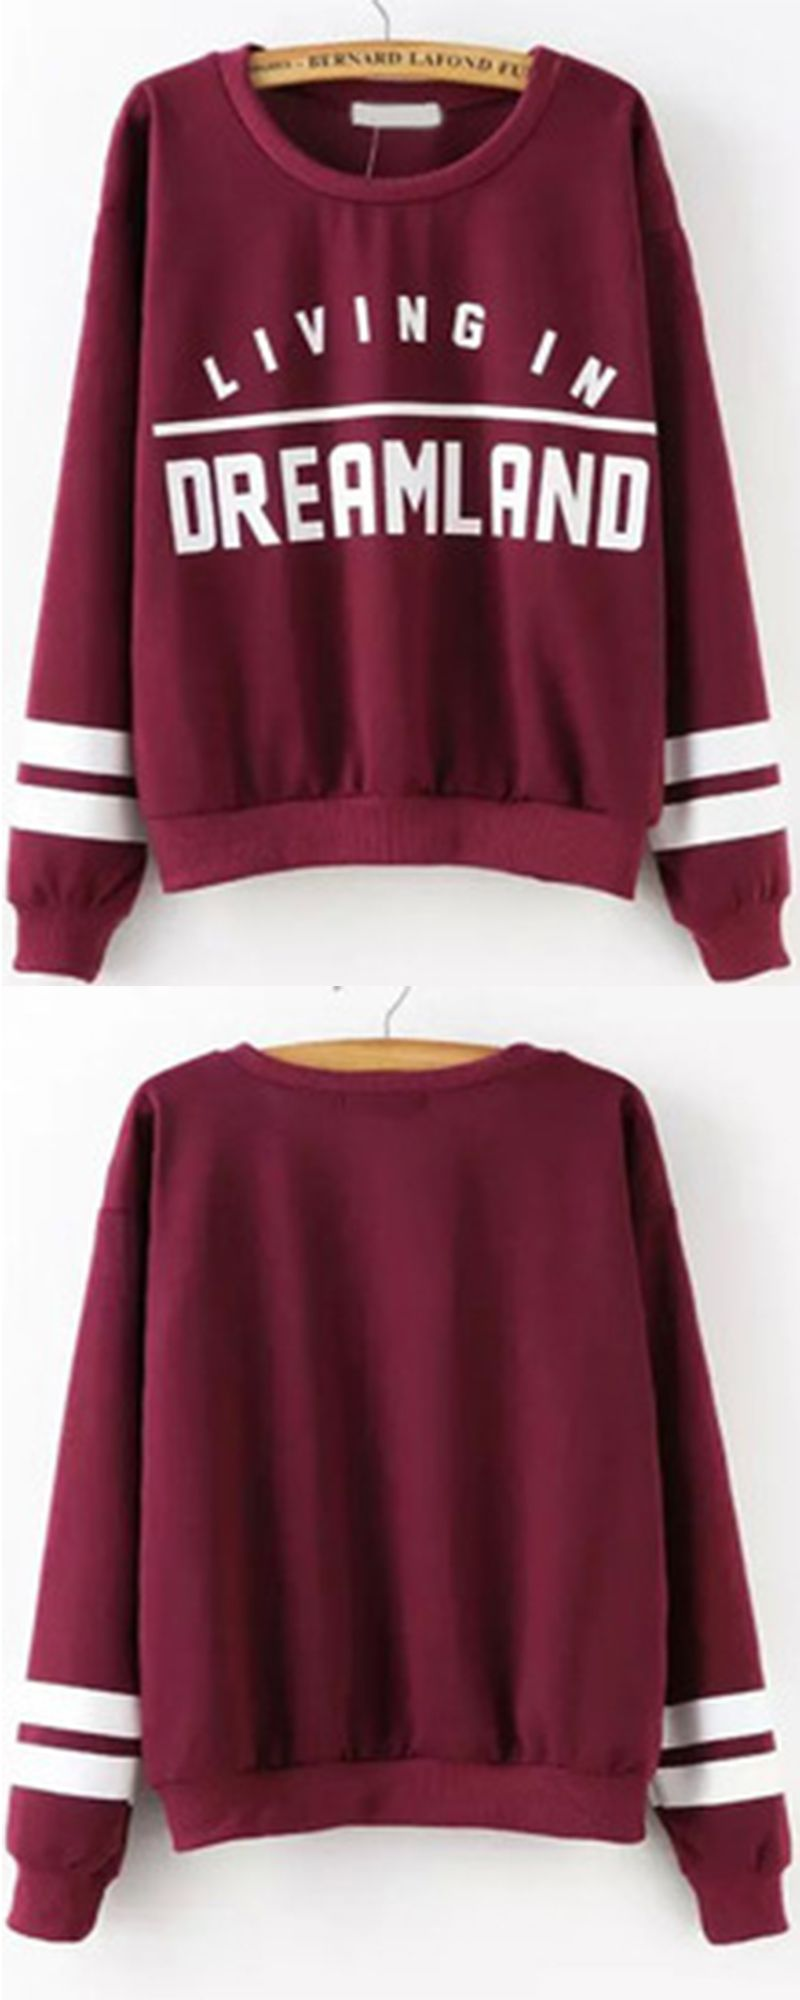 The Wine Red Sweatshirts Are Kind Of Like My Uniform All Fall This Is My Too Tired To Function Sweatshirt Jumper Cool Fashion Gir Clothes Fashion Cool Outfits [ 2000 x 800 Pixel ]